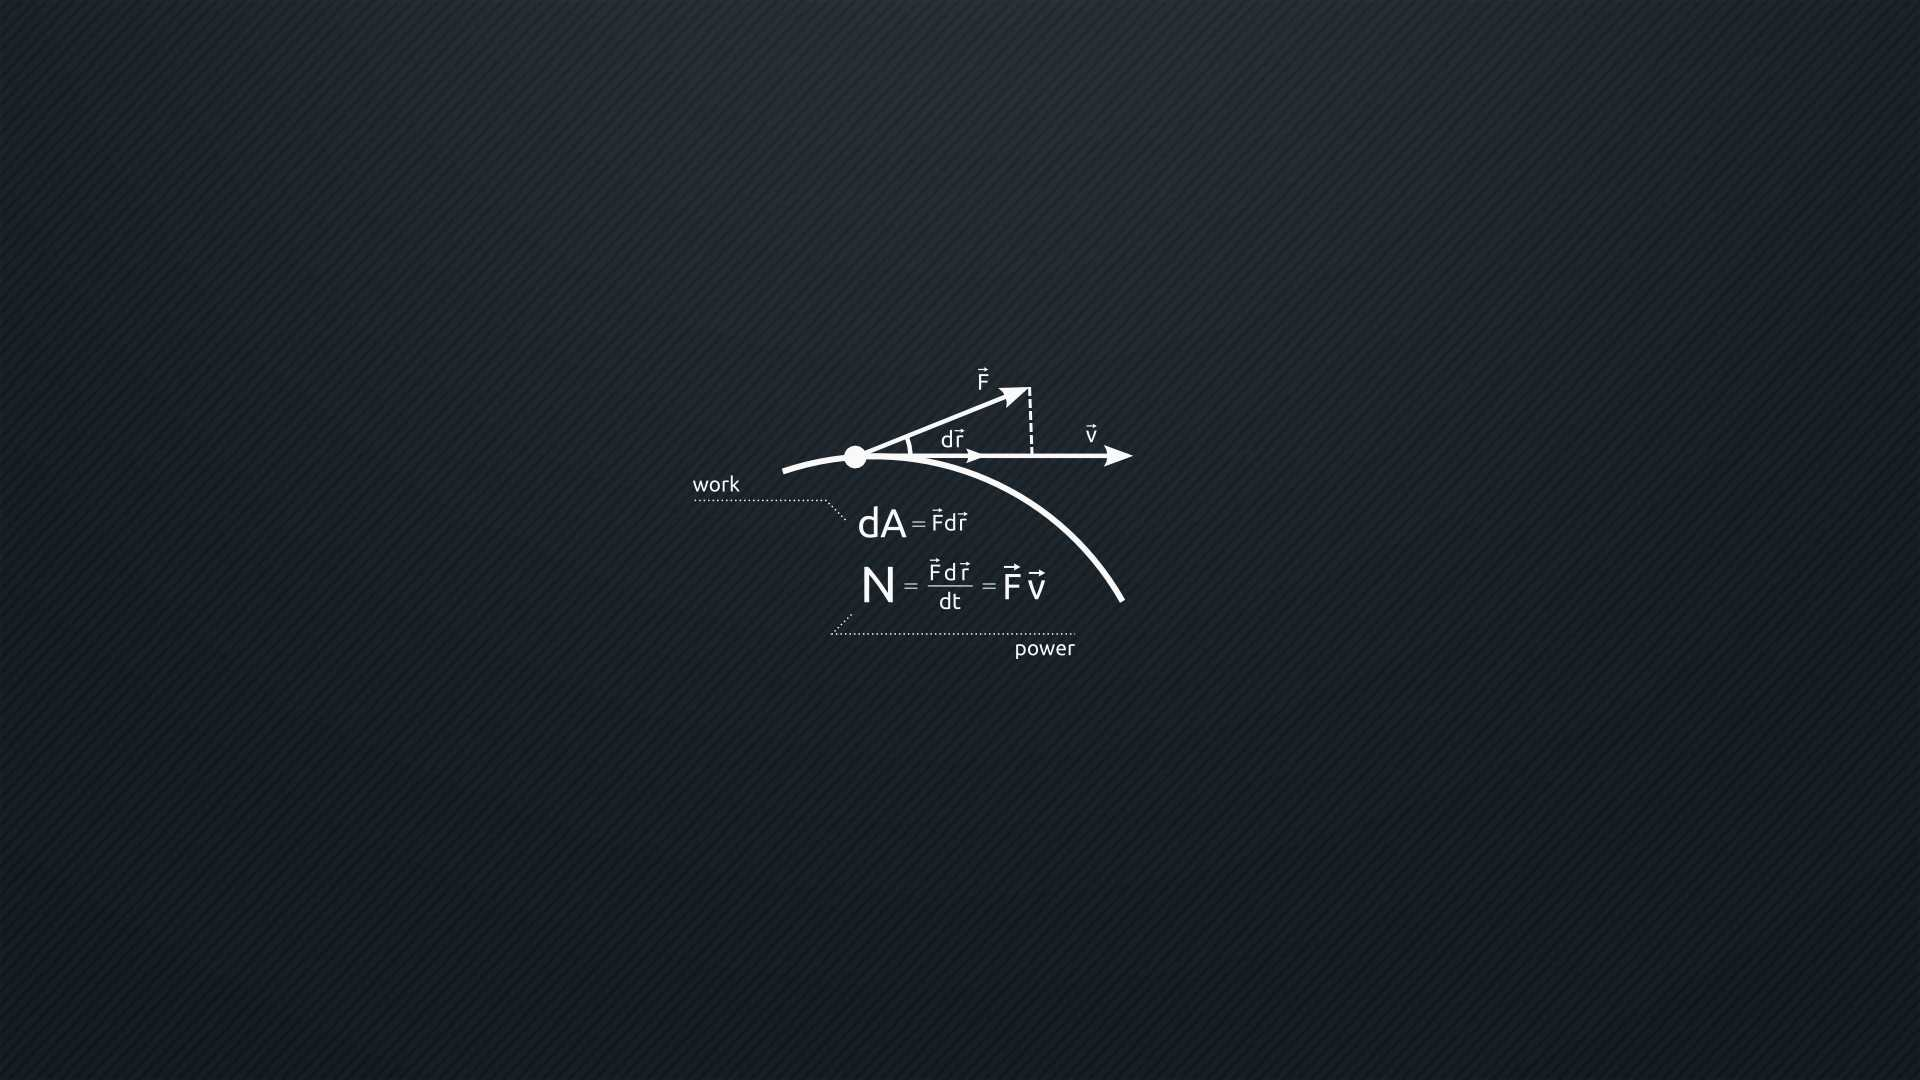 Jesus Minimalist Wallpapers - Wallpaper Cave